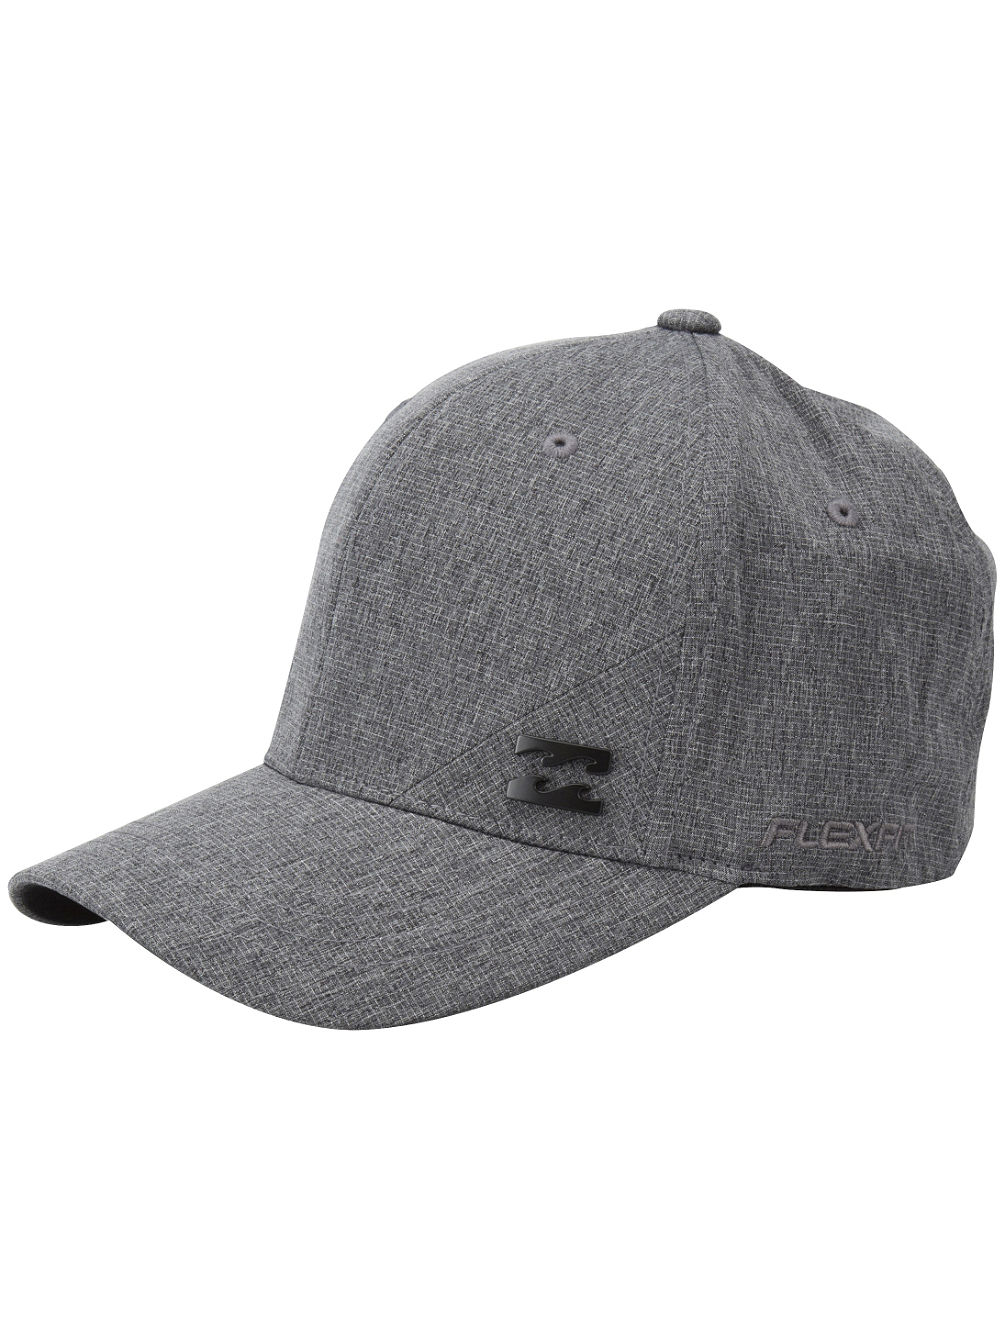 Station Flexfit Cap